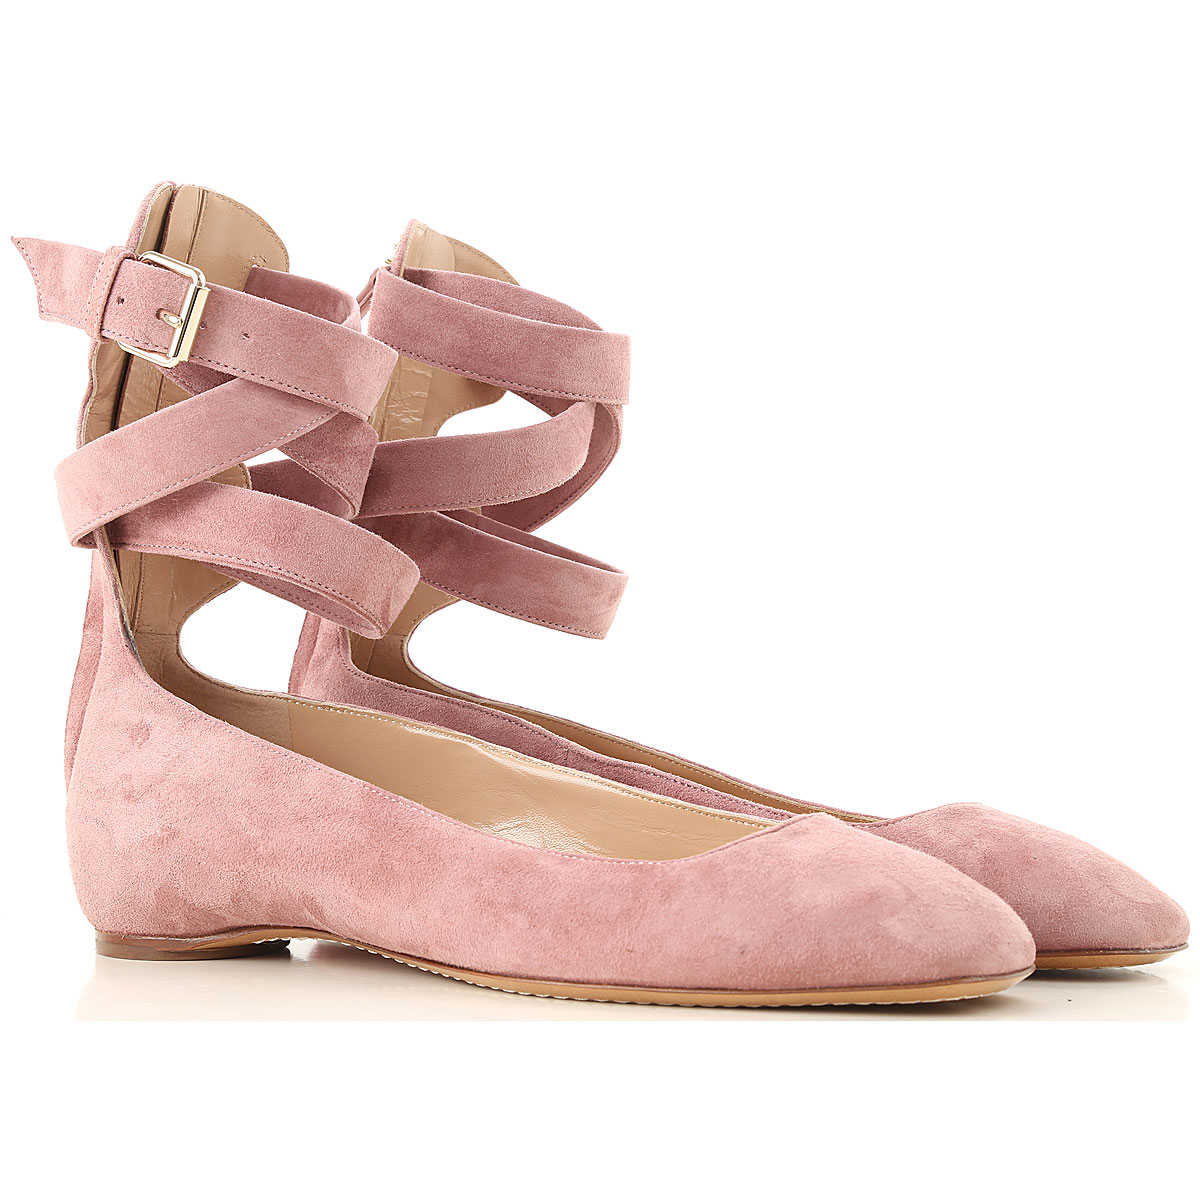 Valentino Garavani Ballet Flats Ballerina Shoes for Women On Sale in Outlet